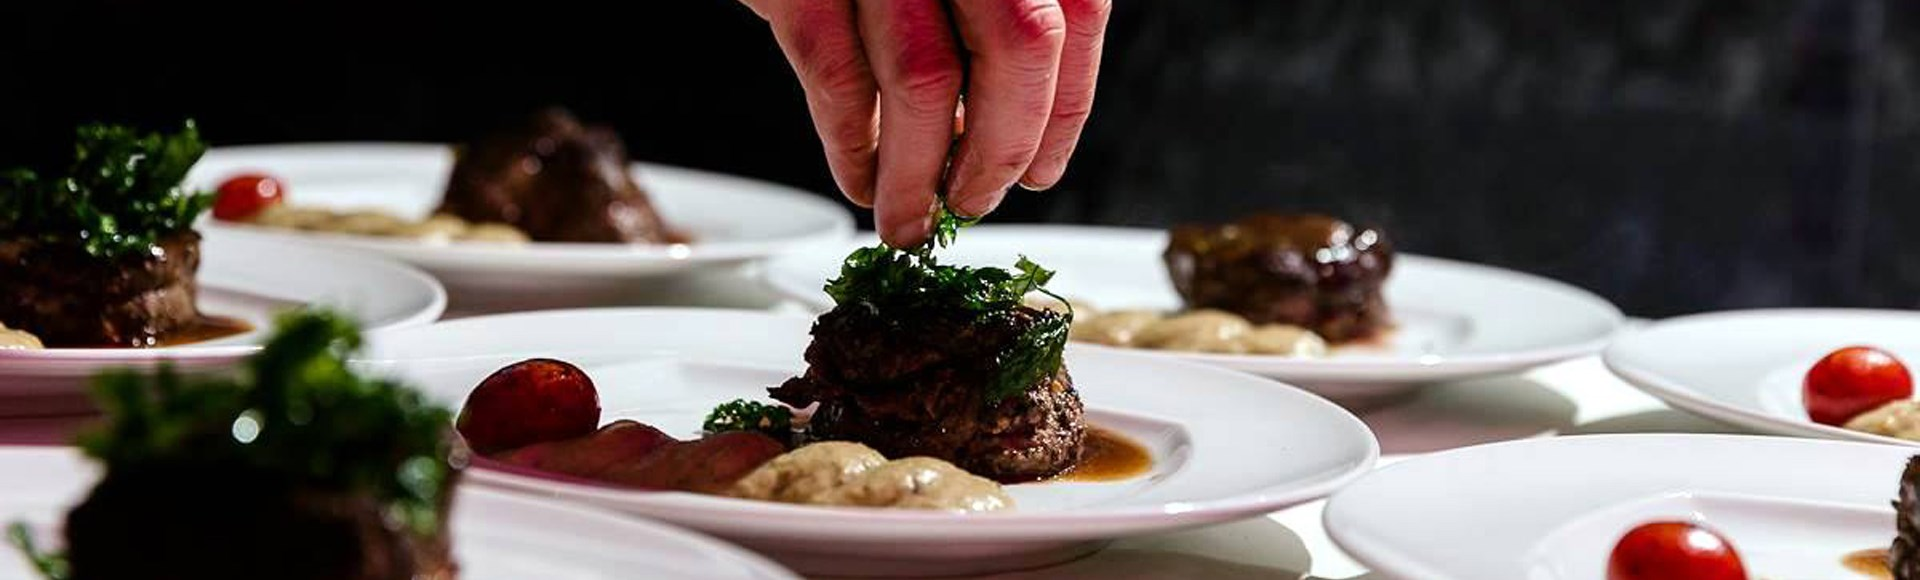 topping-with-chopped-parsley-on-a-veal-fillet-accompanied-by-chives-puree - Private Chef Service For Your Villa Holidays In Santorini, Cyclades, Greece